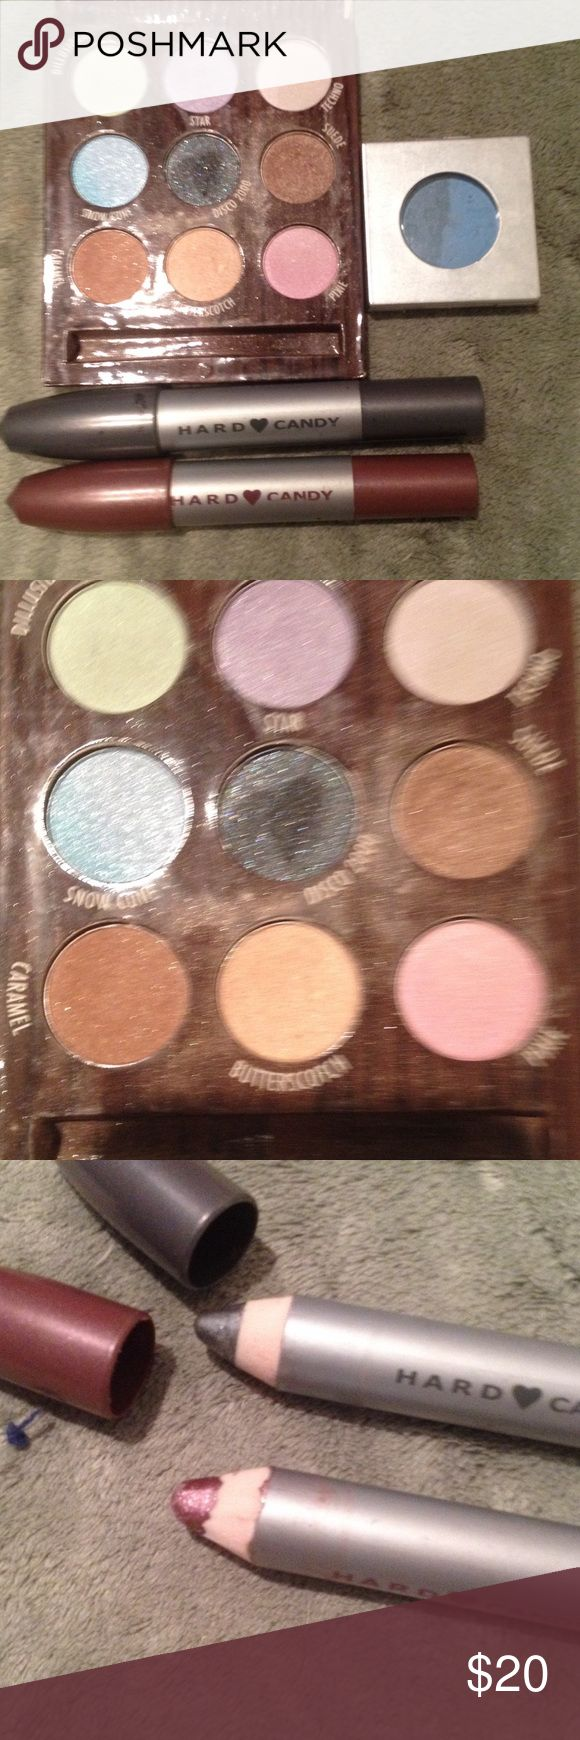 Hard Candy make up Hard candy eyeshadow palette along with individual blue shadow and 2 chunky pencils Hard Candy Makeup Eyeshadow